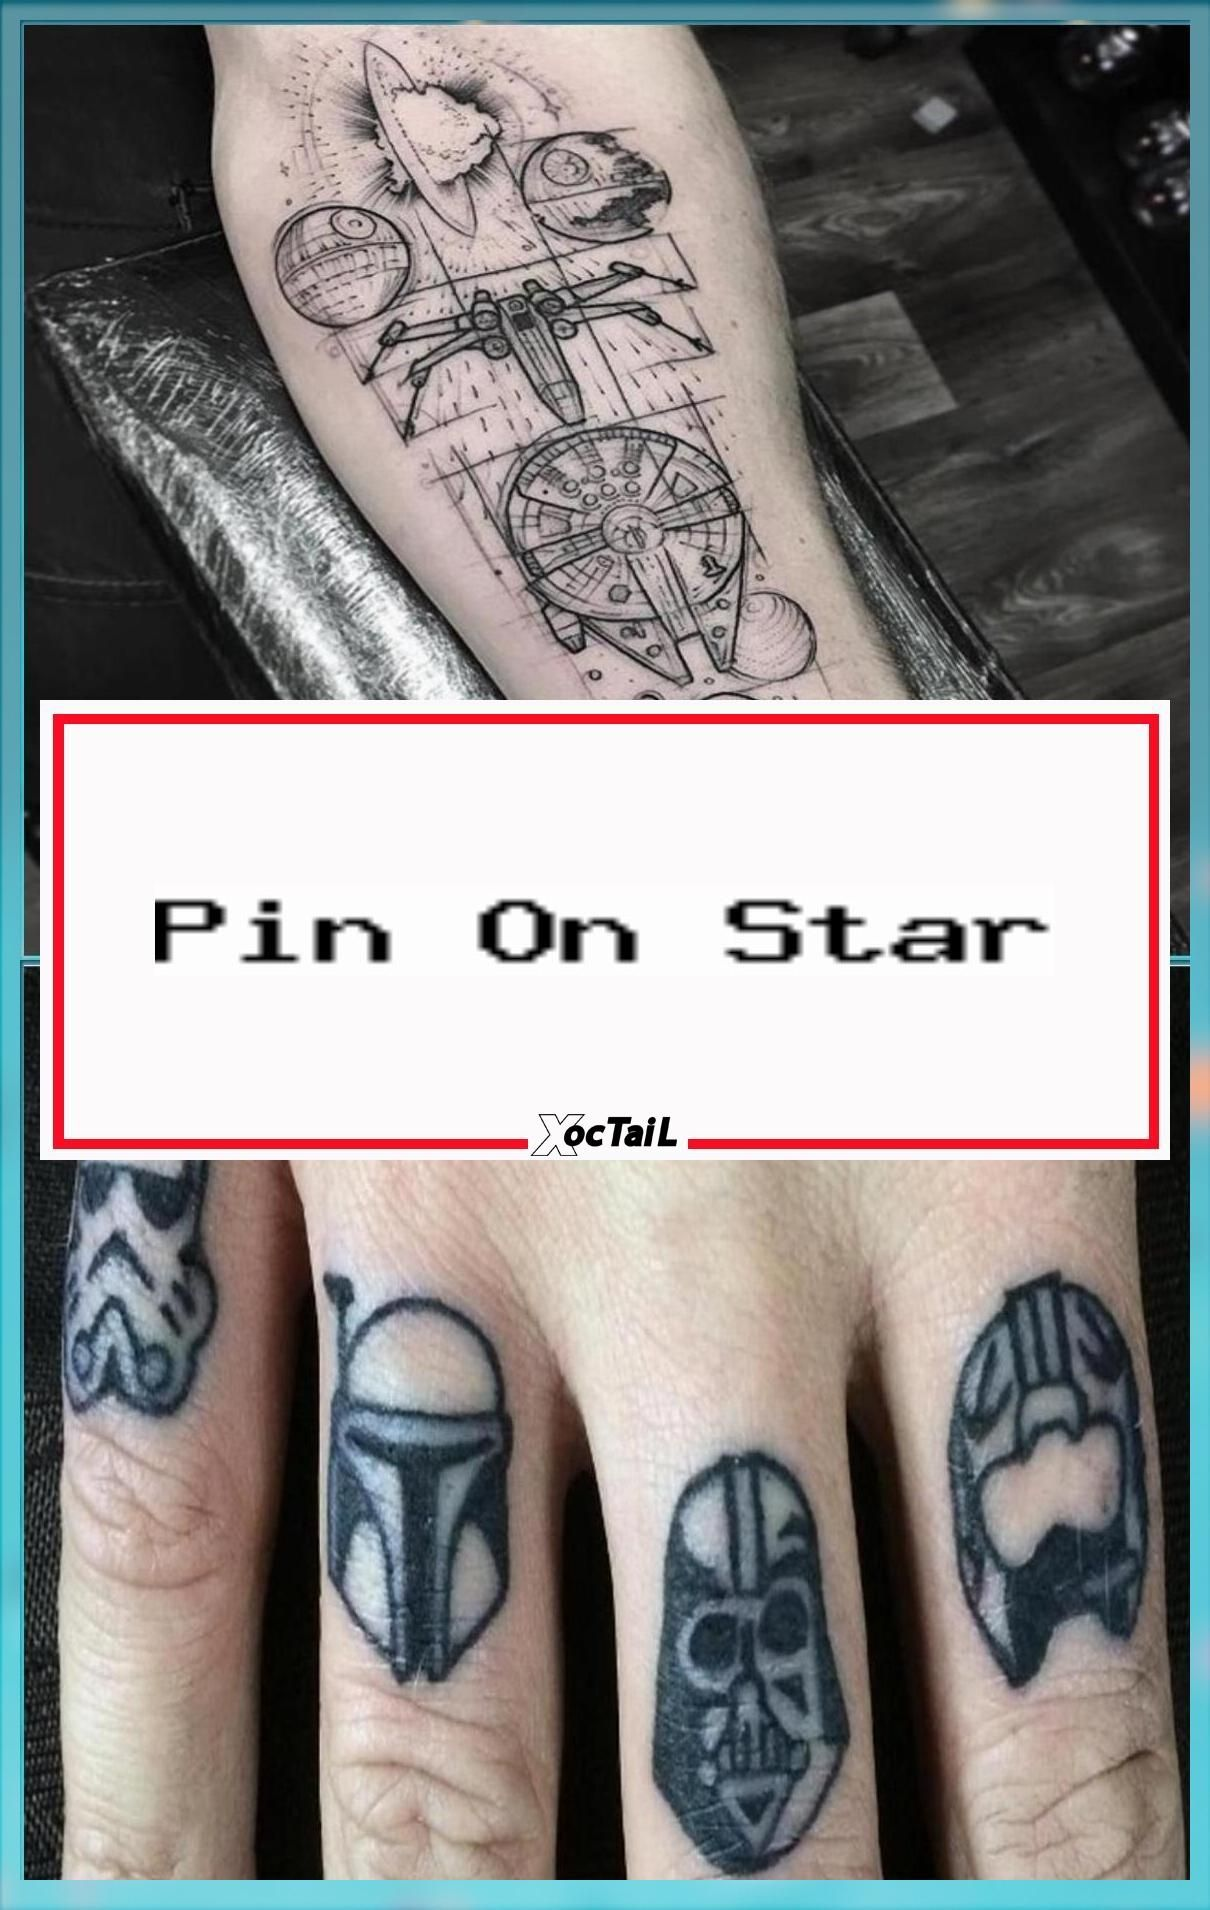 43+ Awesome Star wars tattoo designs ideas in 2021